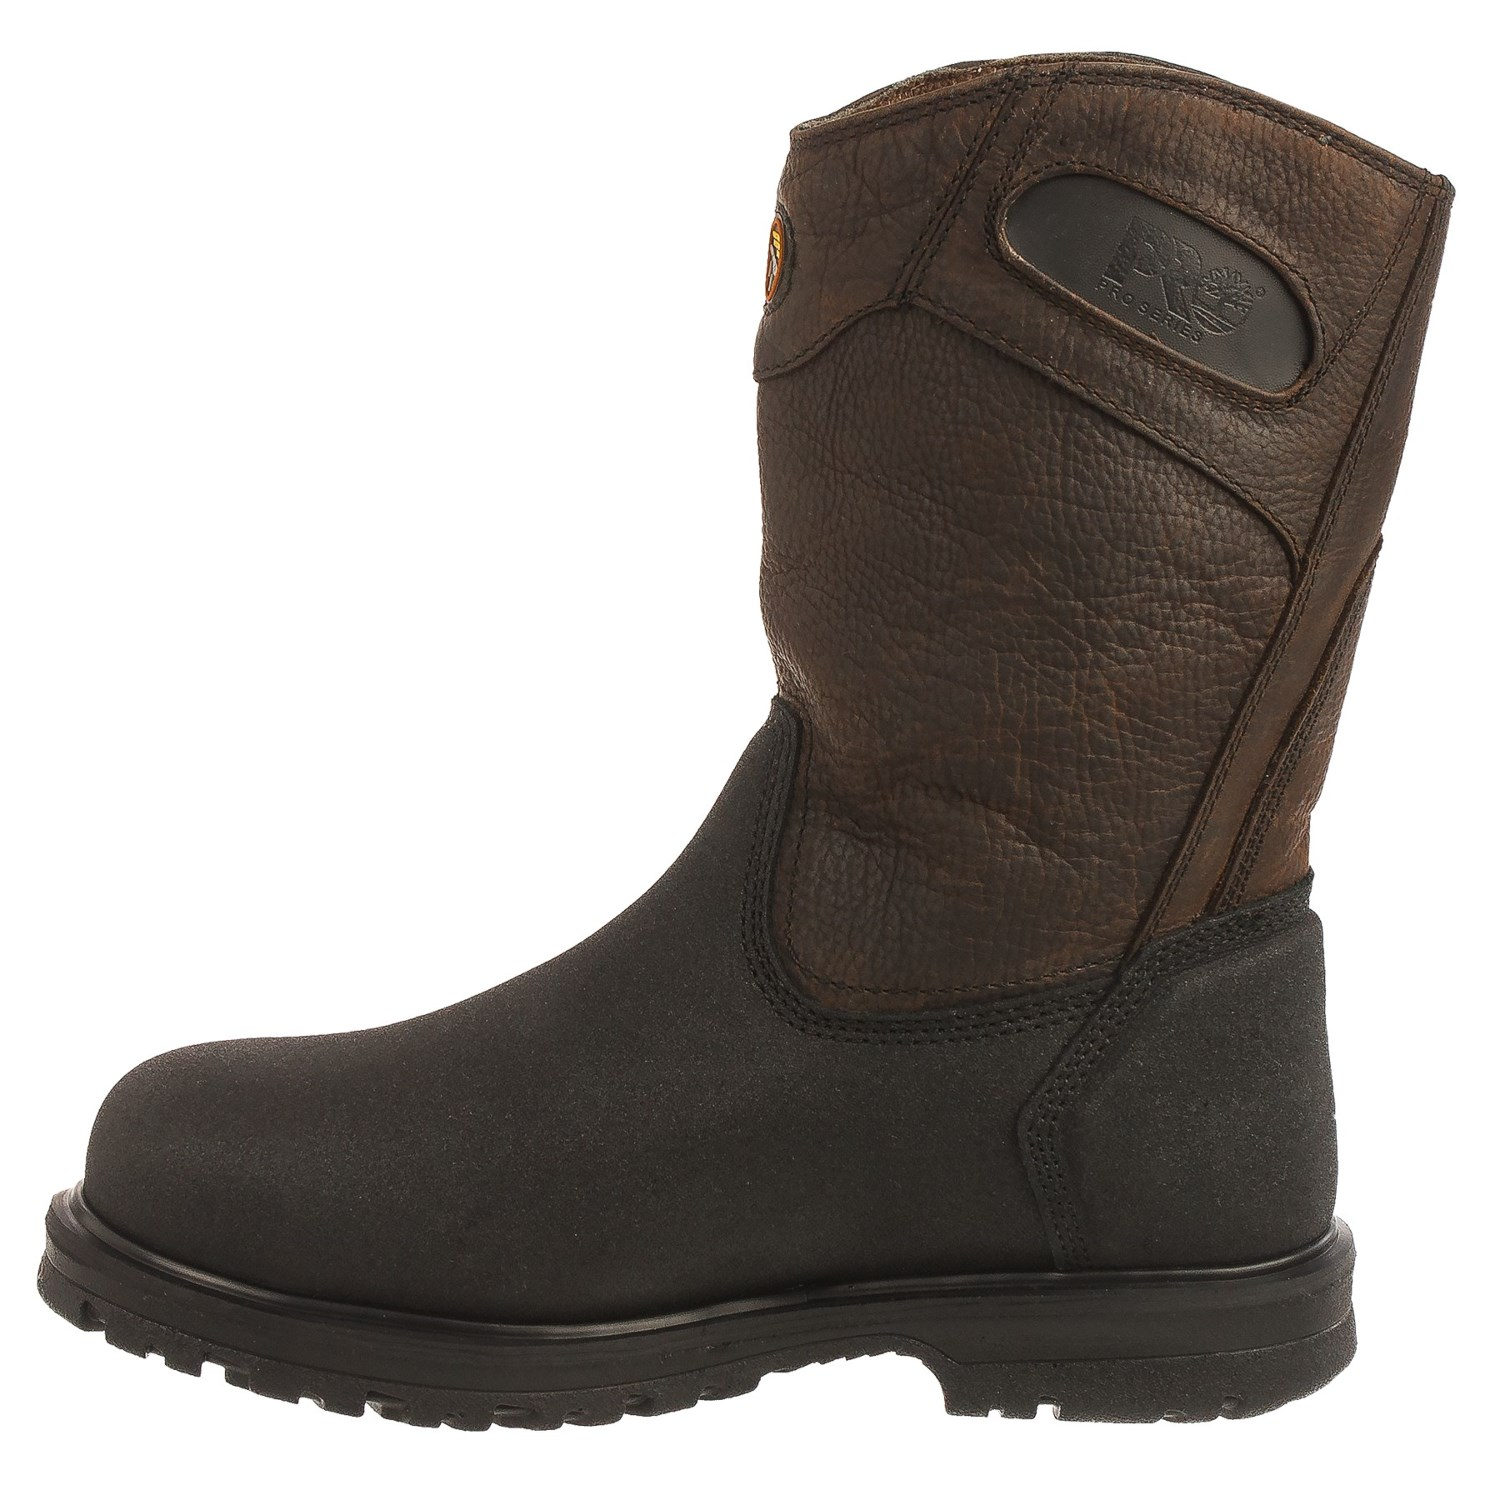 With so many different styles of men's work boots available, it can be tough to pick out the right type for your needs. If you can't decide on steel versus composite toe work boots, or you're stuck between rubber and leather construction, browse Sears' selection of Thorogood, Die Hard and Justin work boots to find the right type for any job.